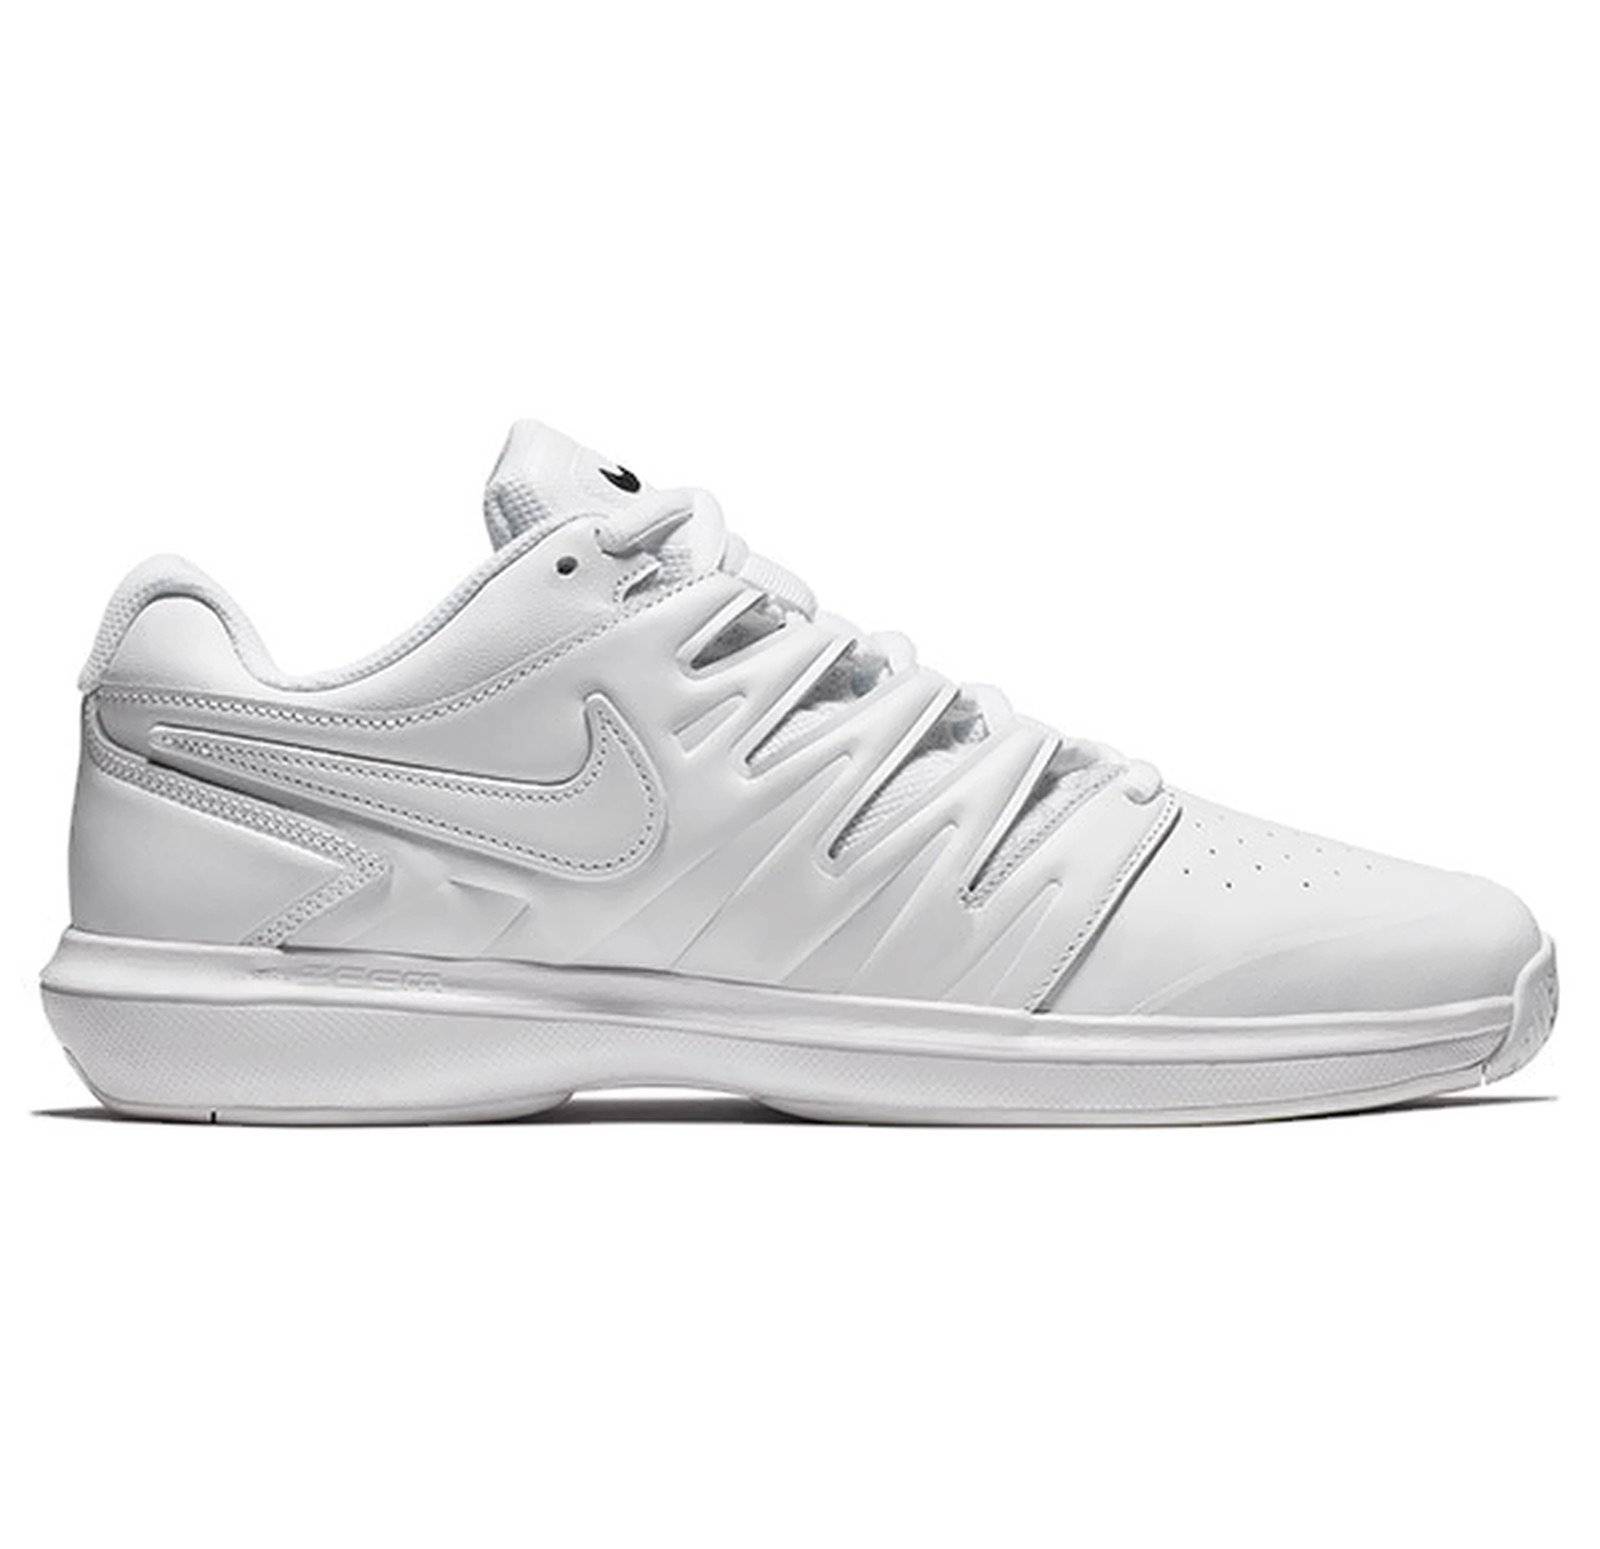 huge selection of 6c0fb 16ac9 Galleon - NIKE Men s Air Zoom Prestige Tennis Shoes (12 D US, Leather -  White White Black)